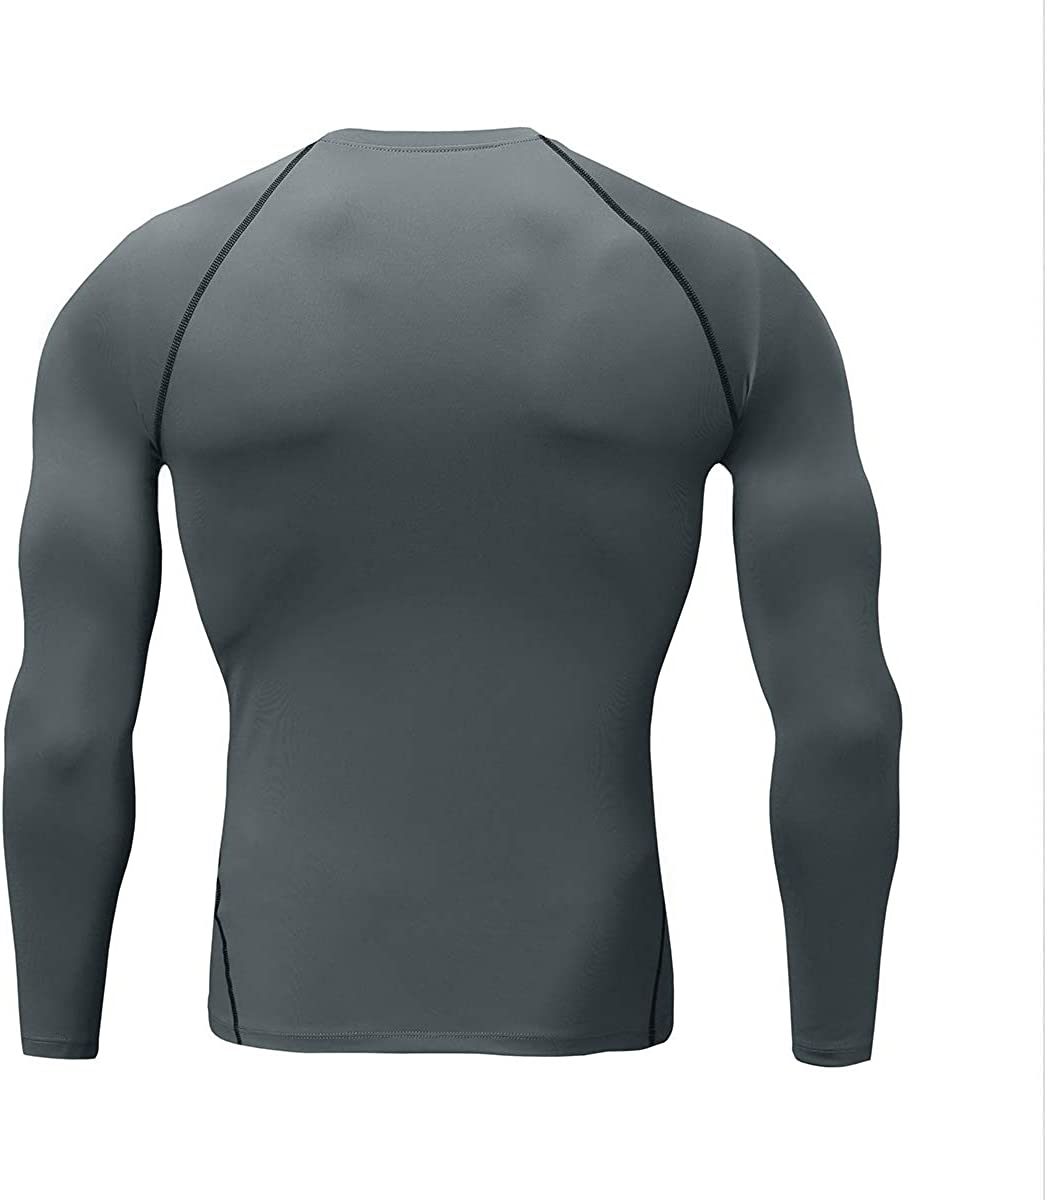 Boyufitness Mens 1~3 Pack Compression Cool Dry/Athletic Sleeveless Muscle Baselayer Shirts